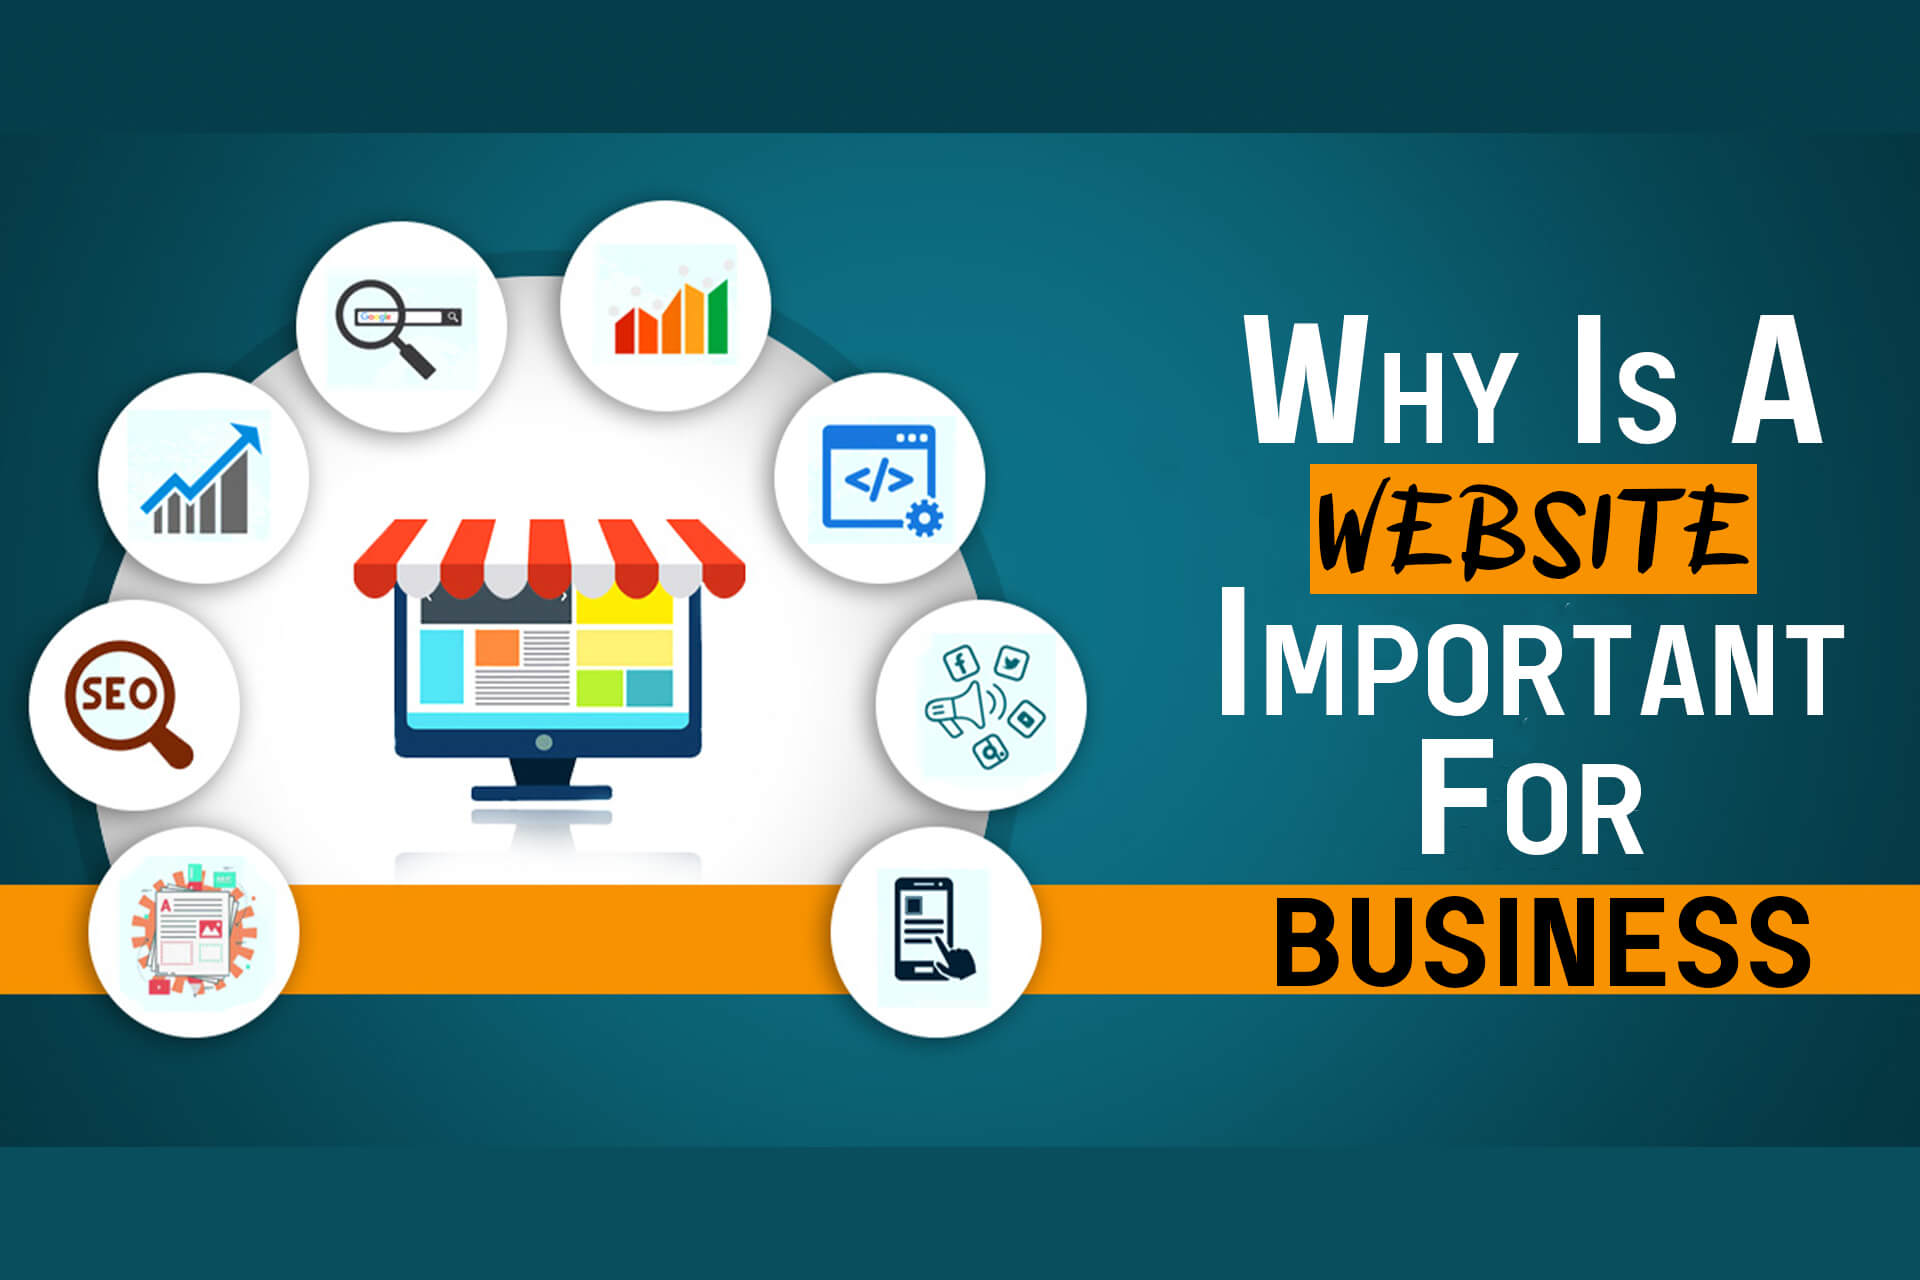 Why Is A Website Important For Business?